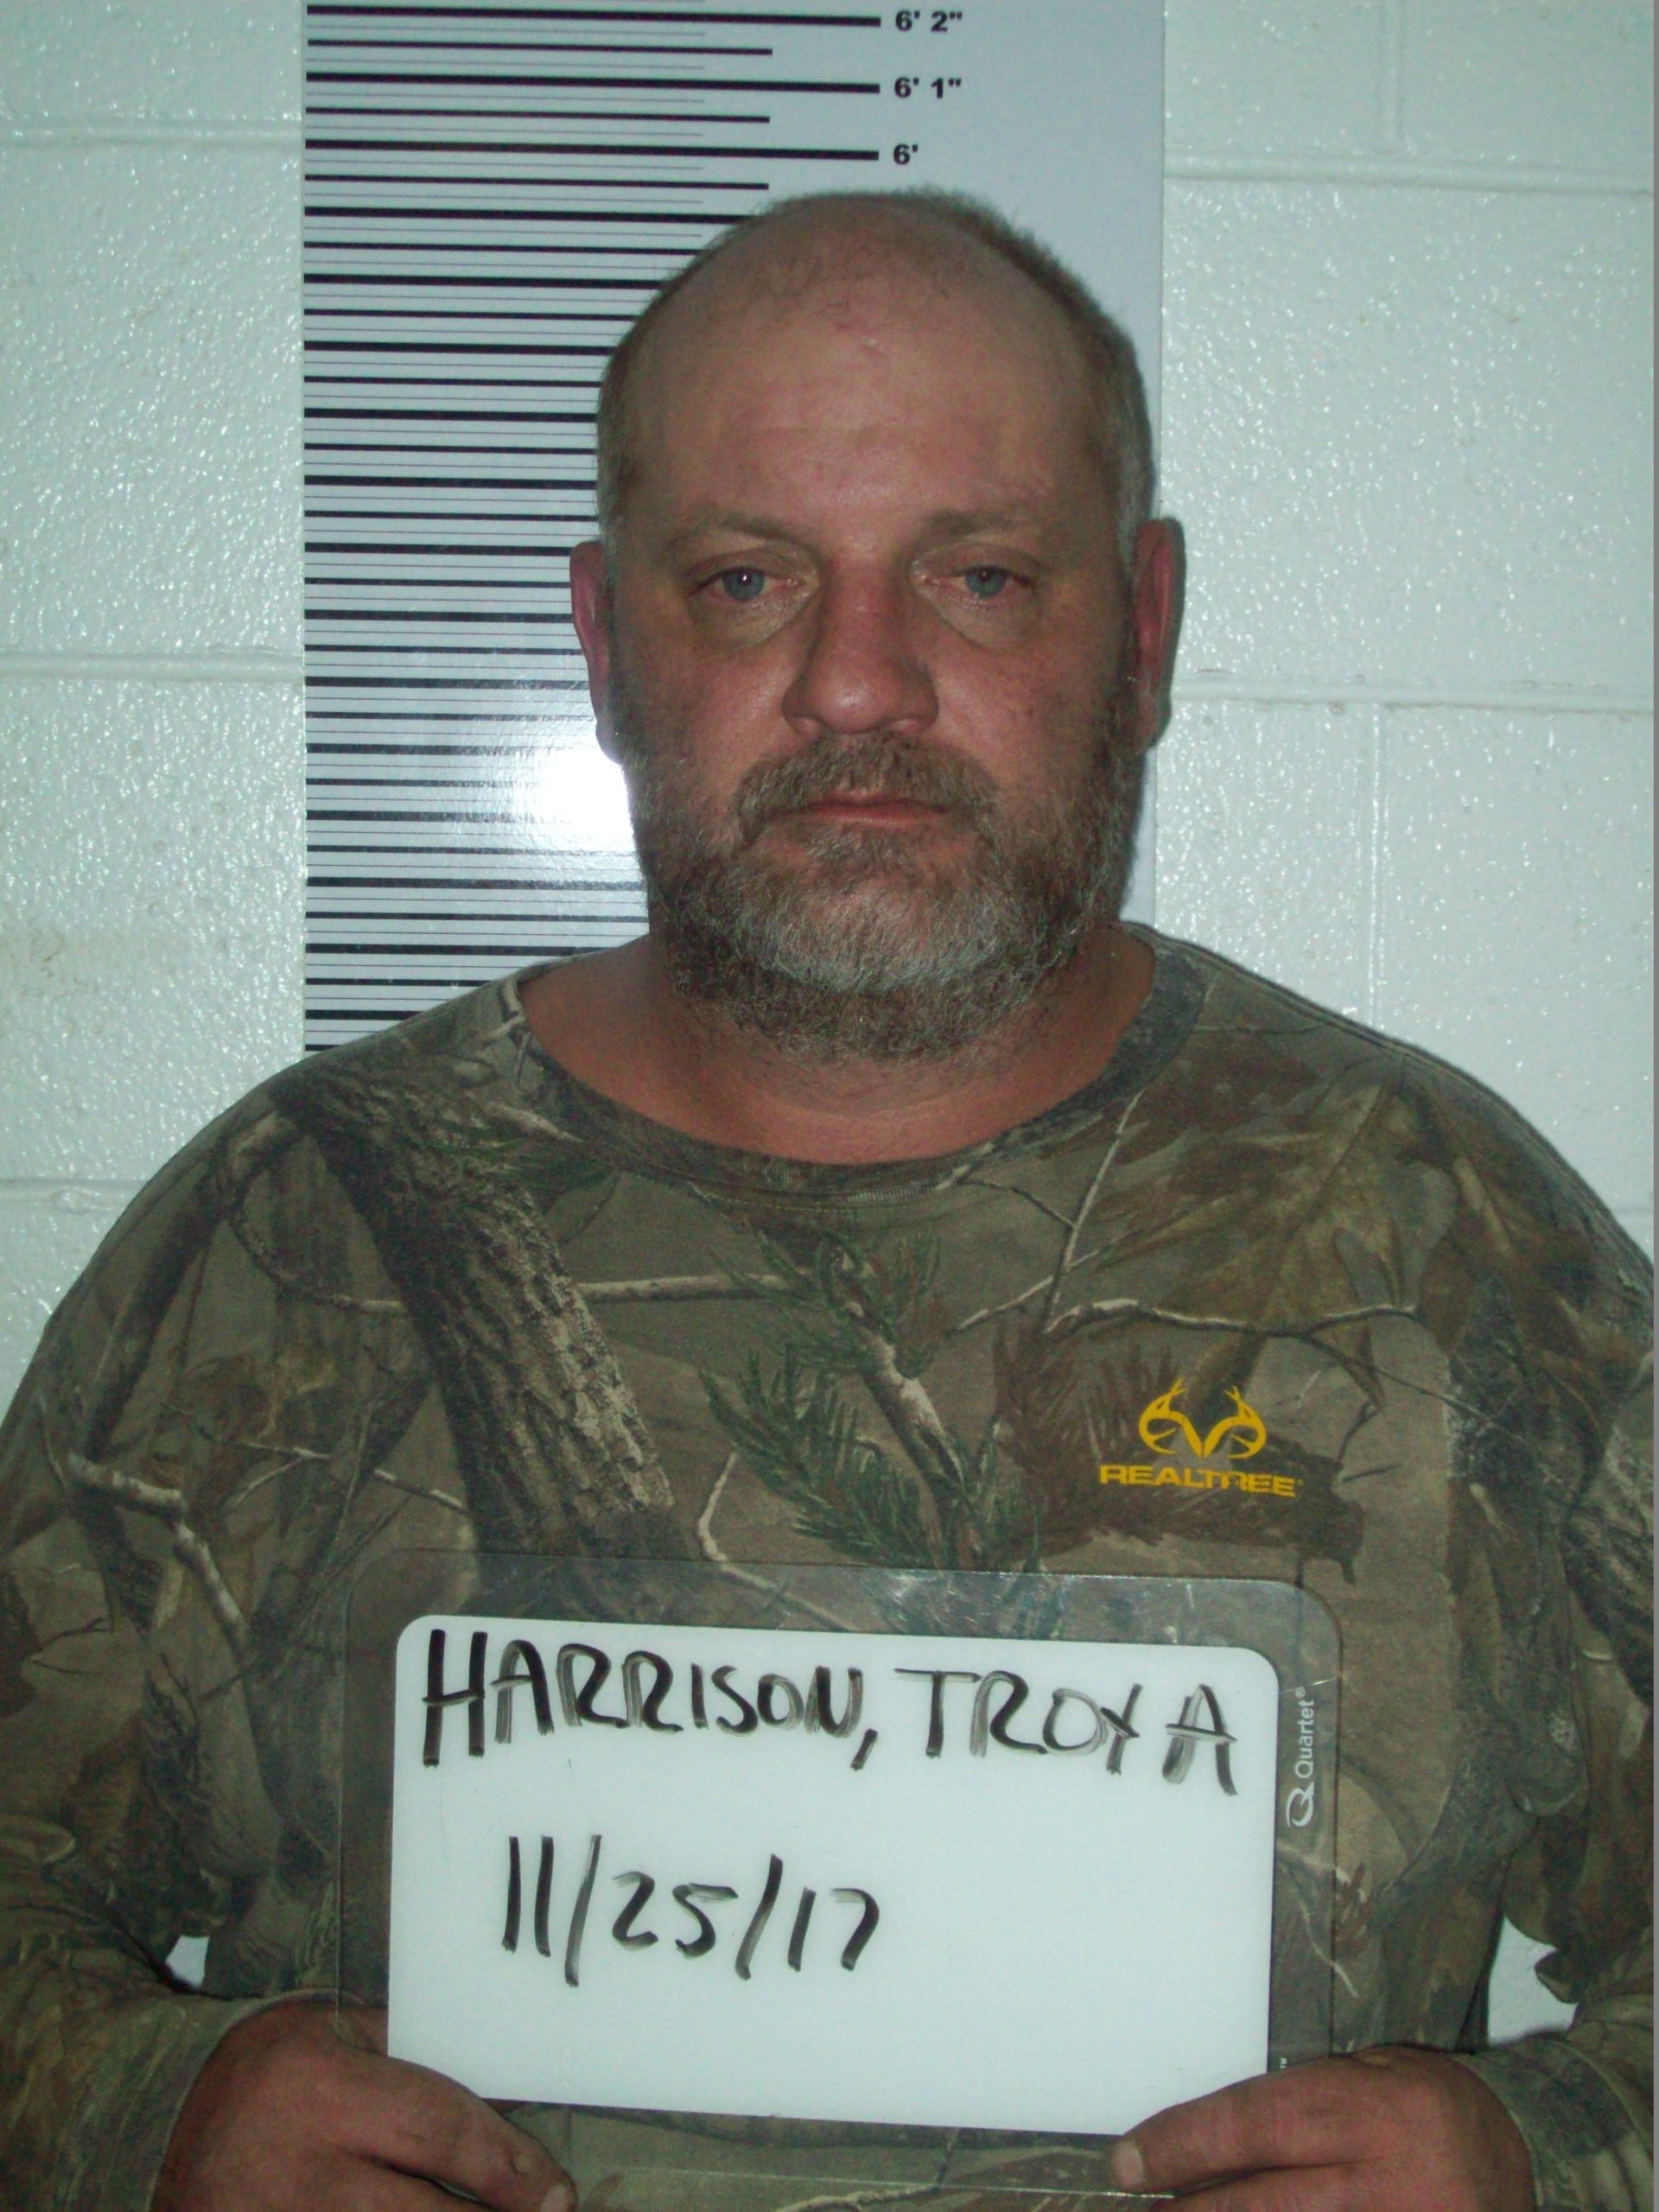 Flora Man Facing Up To 15 Years in DOC for Felony Charges